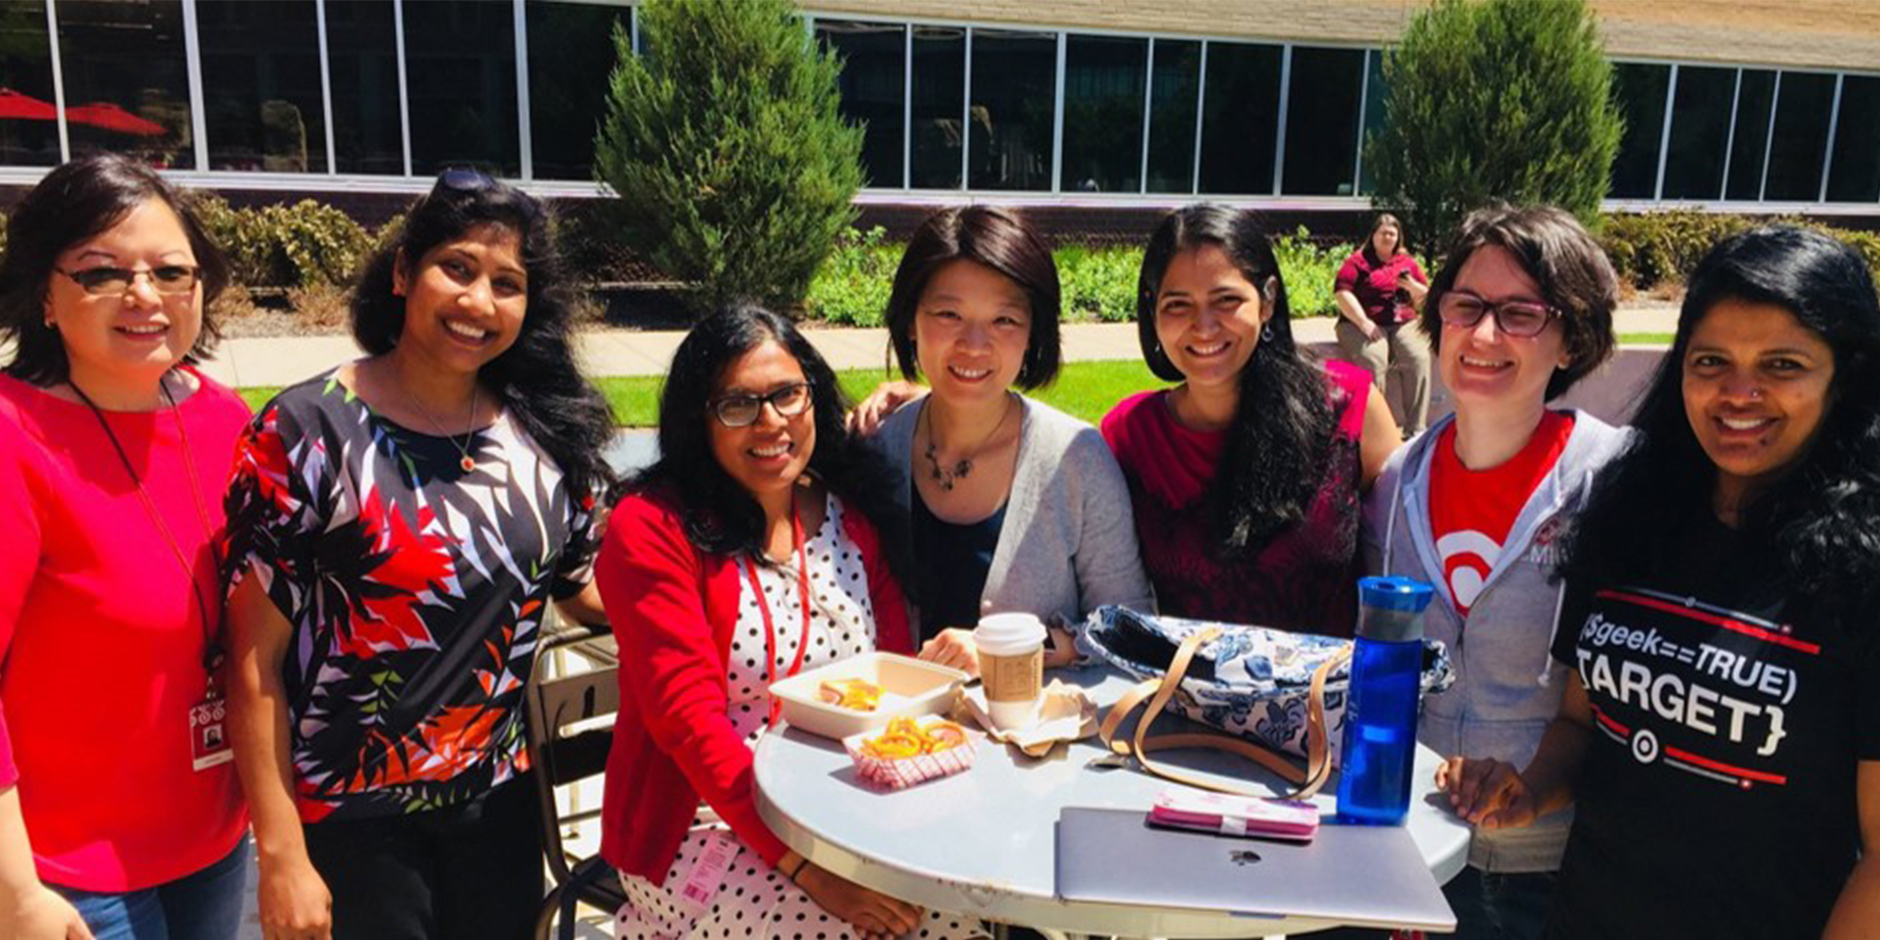 Members of Target's eMIP program stand together at a table outside of our headquarters